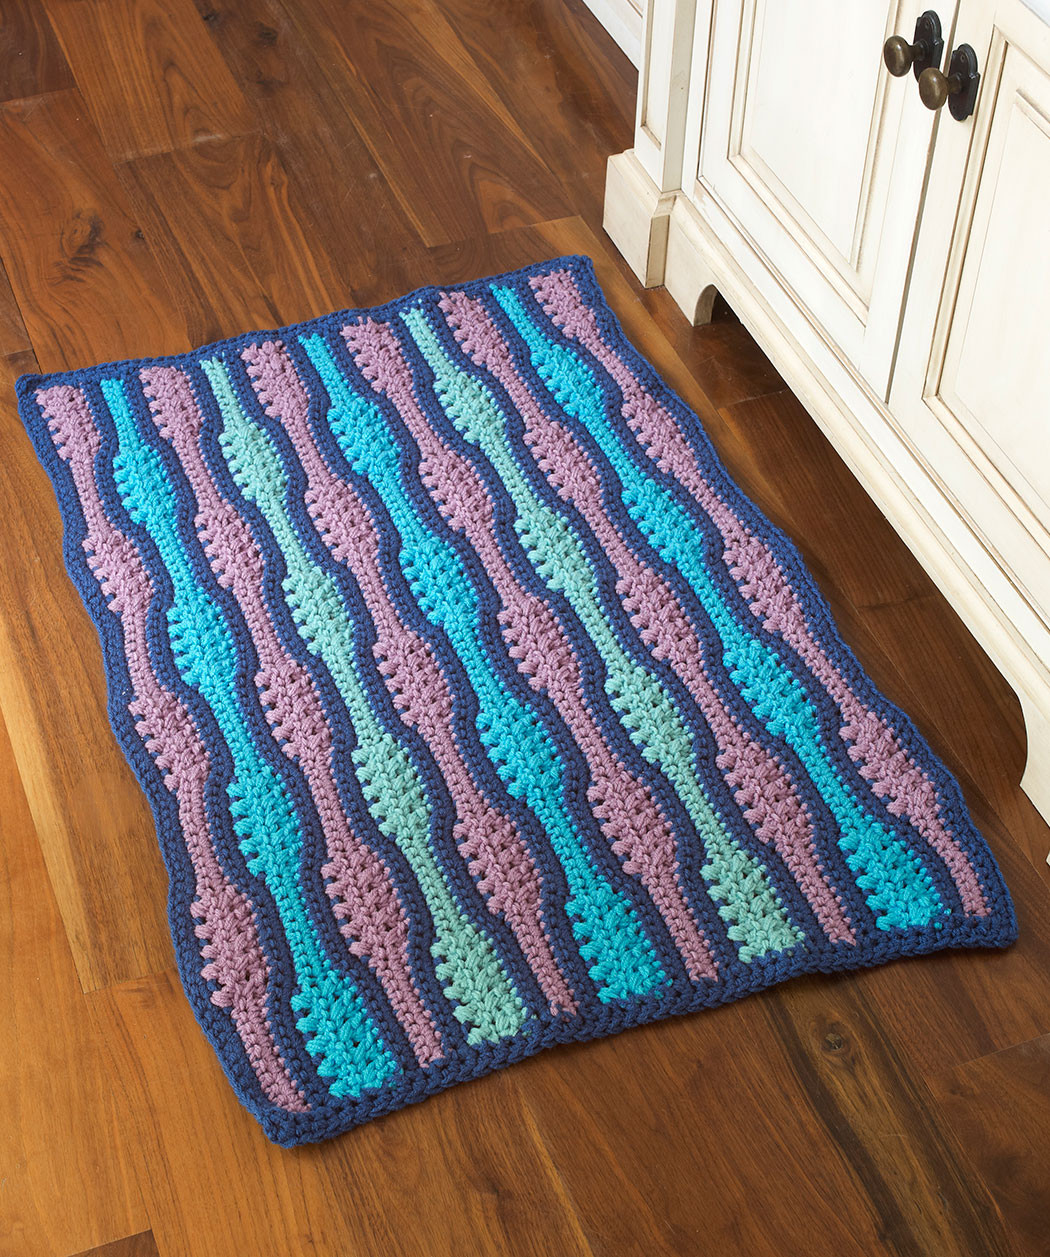 Add Some Color To Your Floor With These Rugs